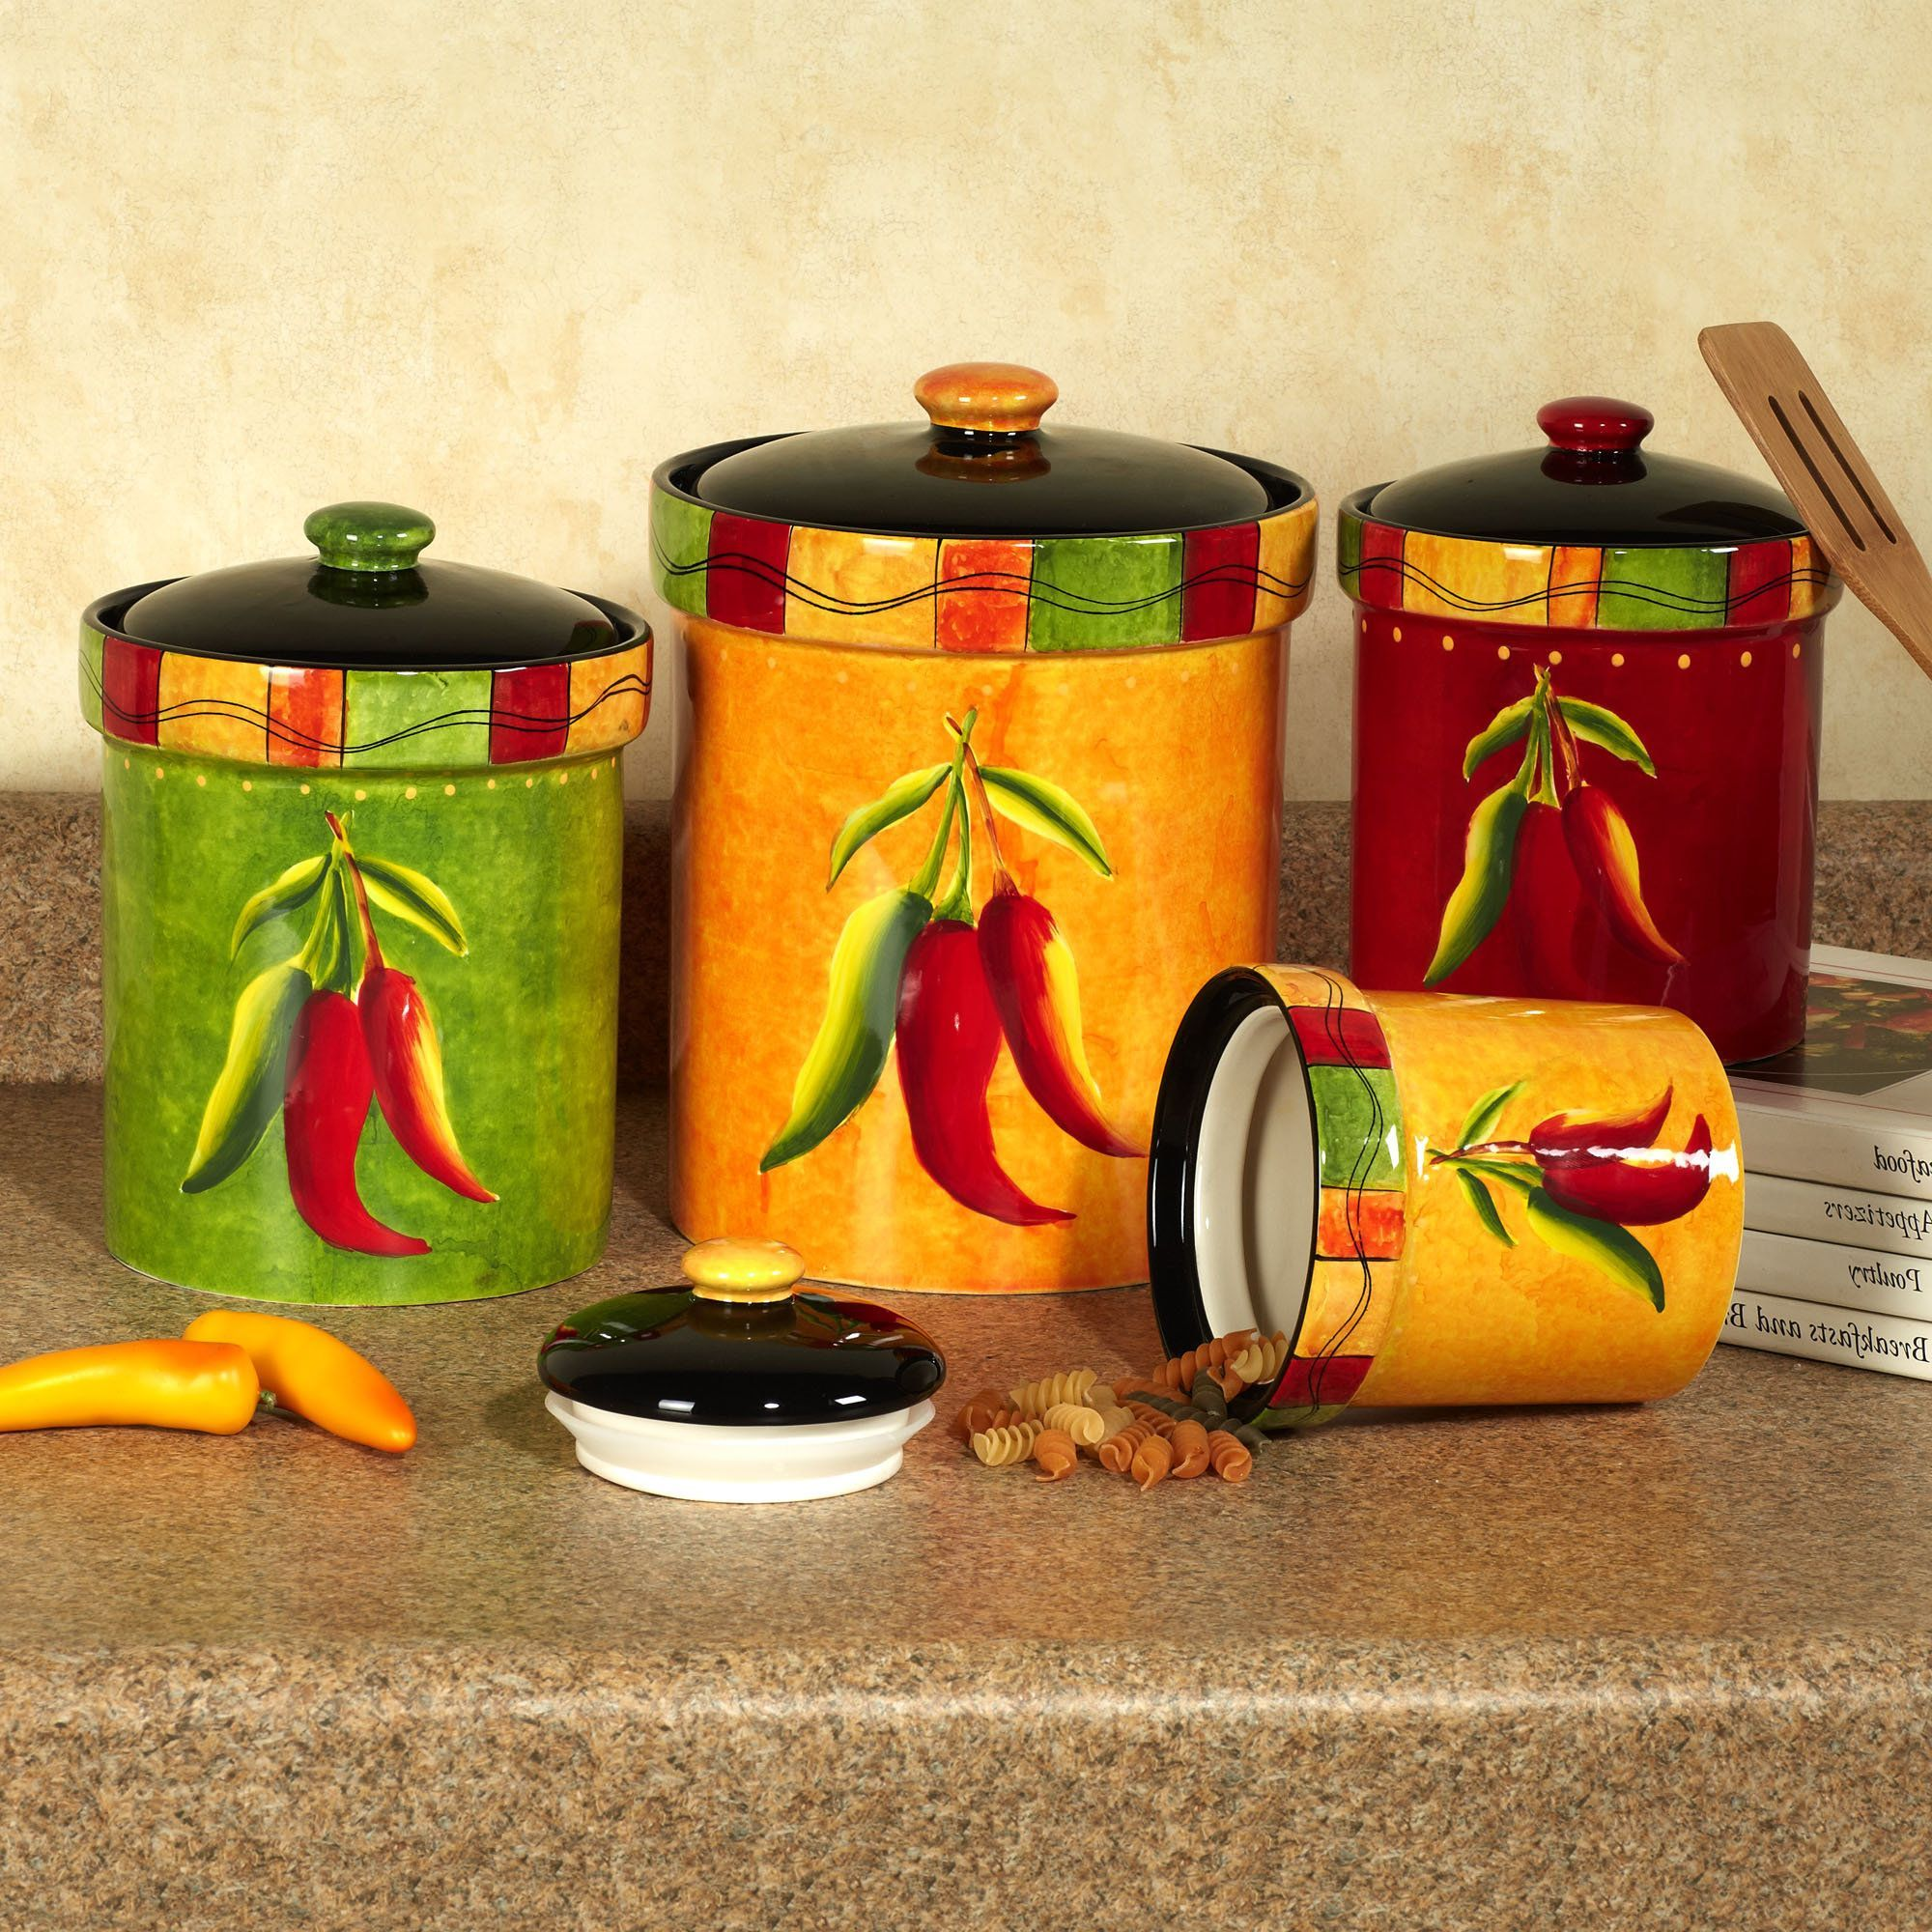 Chili Pepper Decor Of Chili Pepper Kitchen Decor Nice Colorful